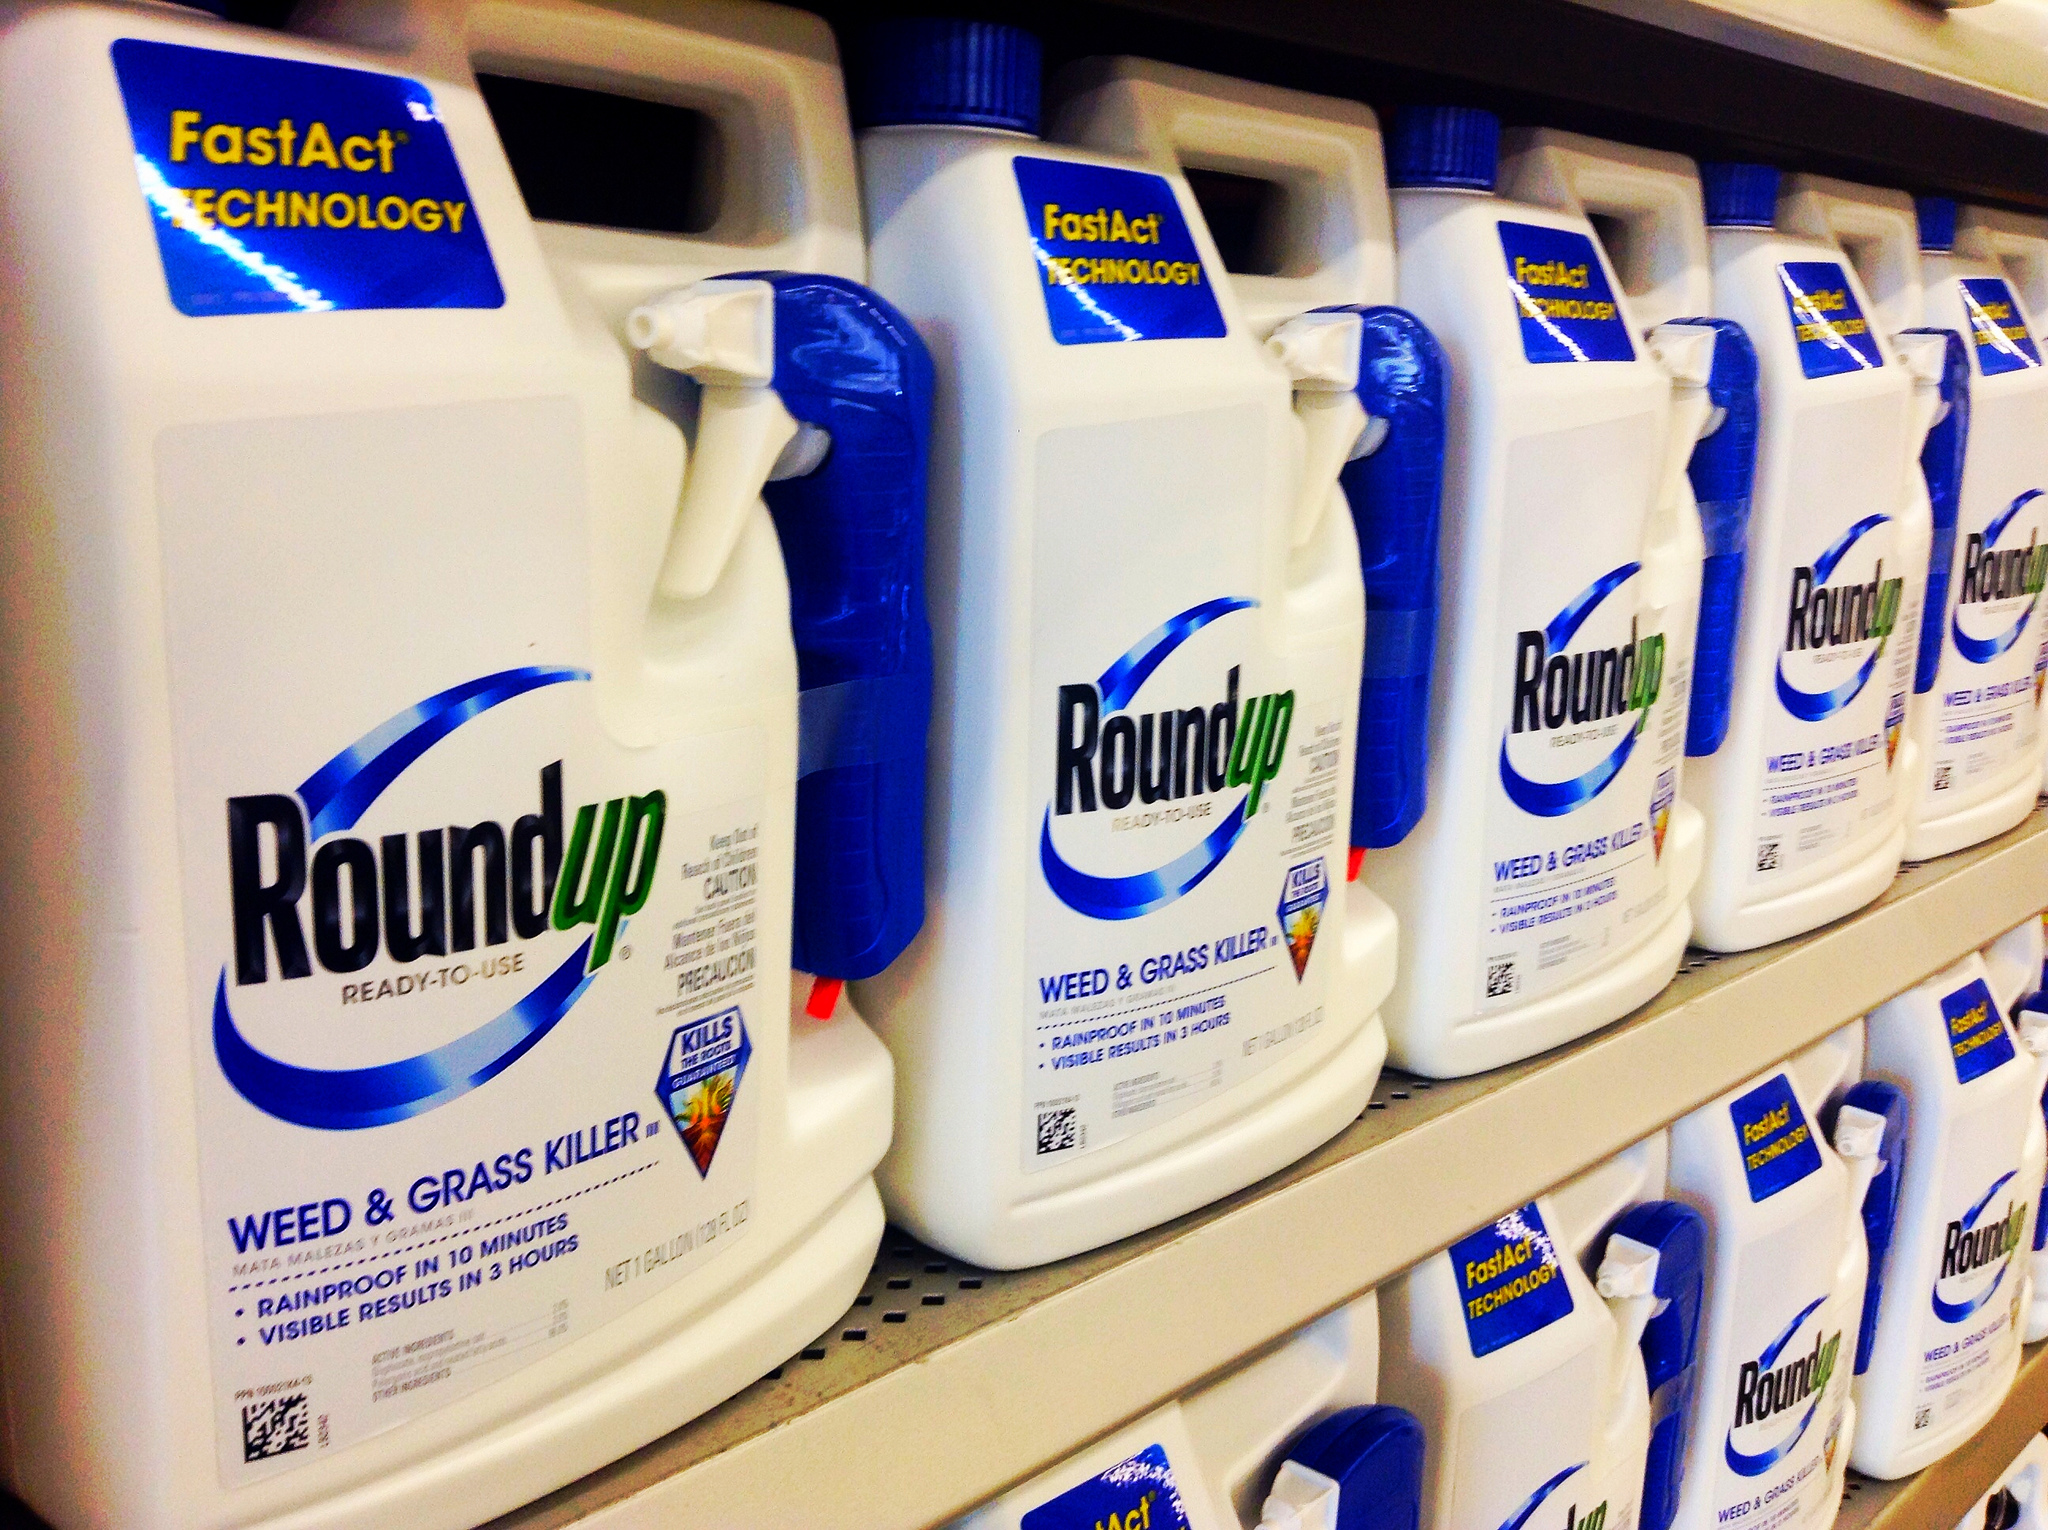 RoundUp Monsanto, agosto 2014. Credit: Mike Mozart / Flickr. Licenza: CC BY 2.0.